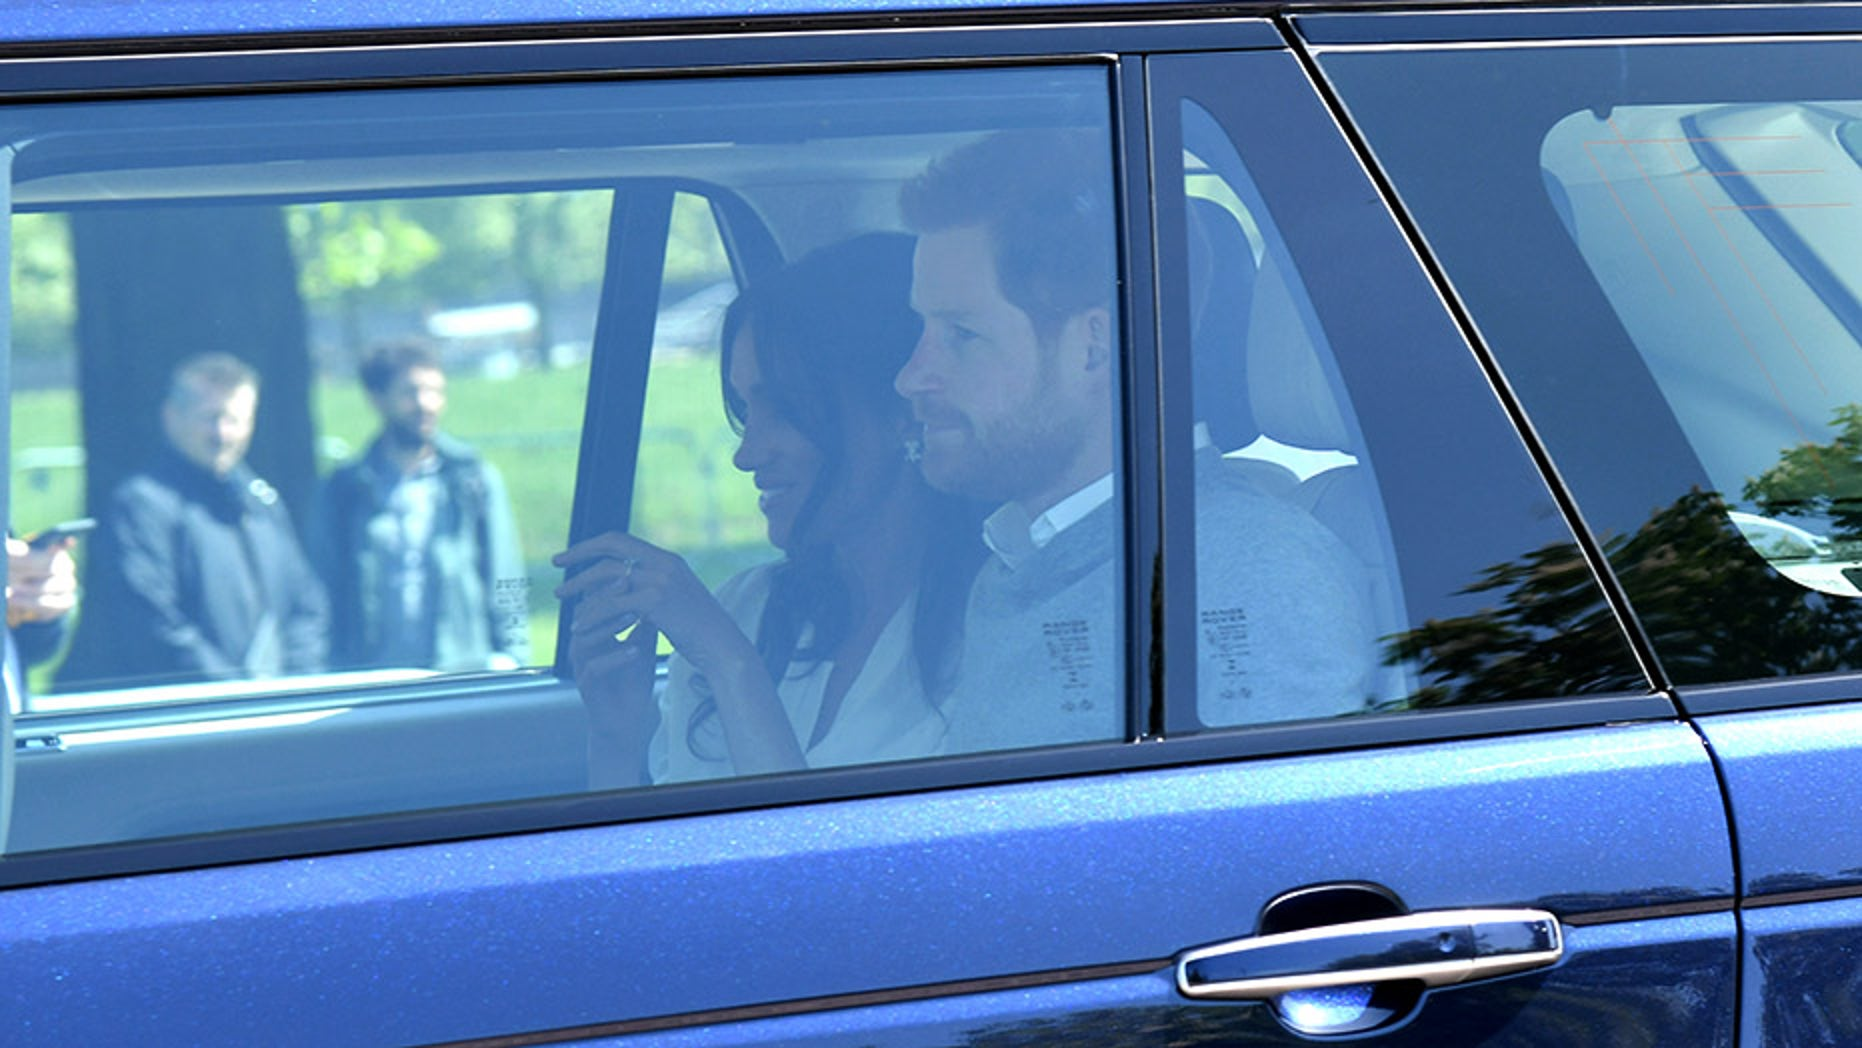 Meghan Markle wore $10,000 earrings and white blouse upon arrival in Windsor for the royal wedding rehearsal.